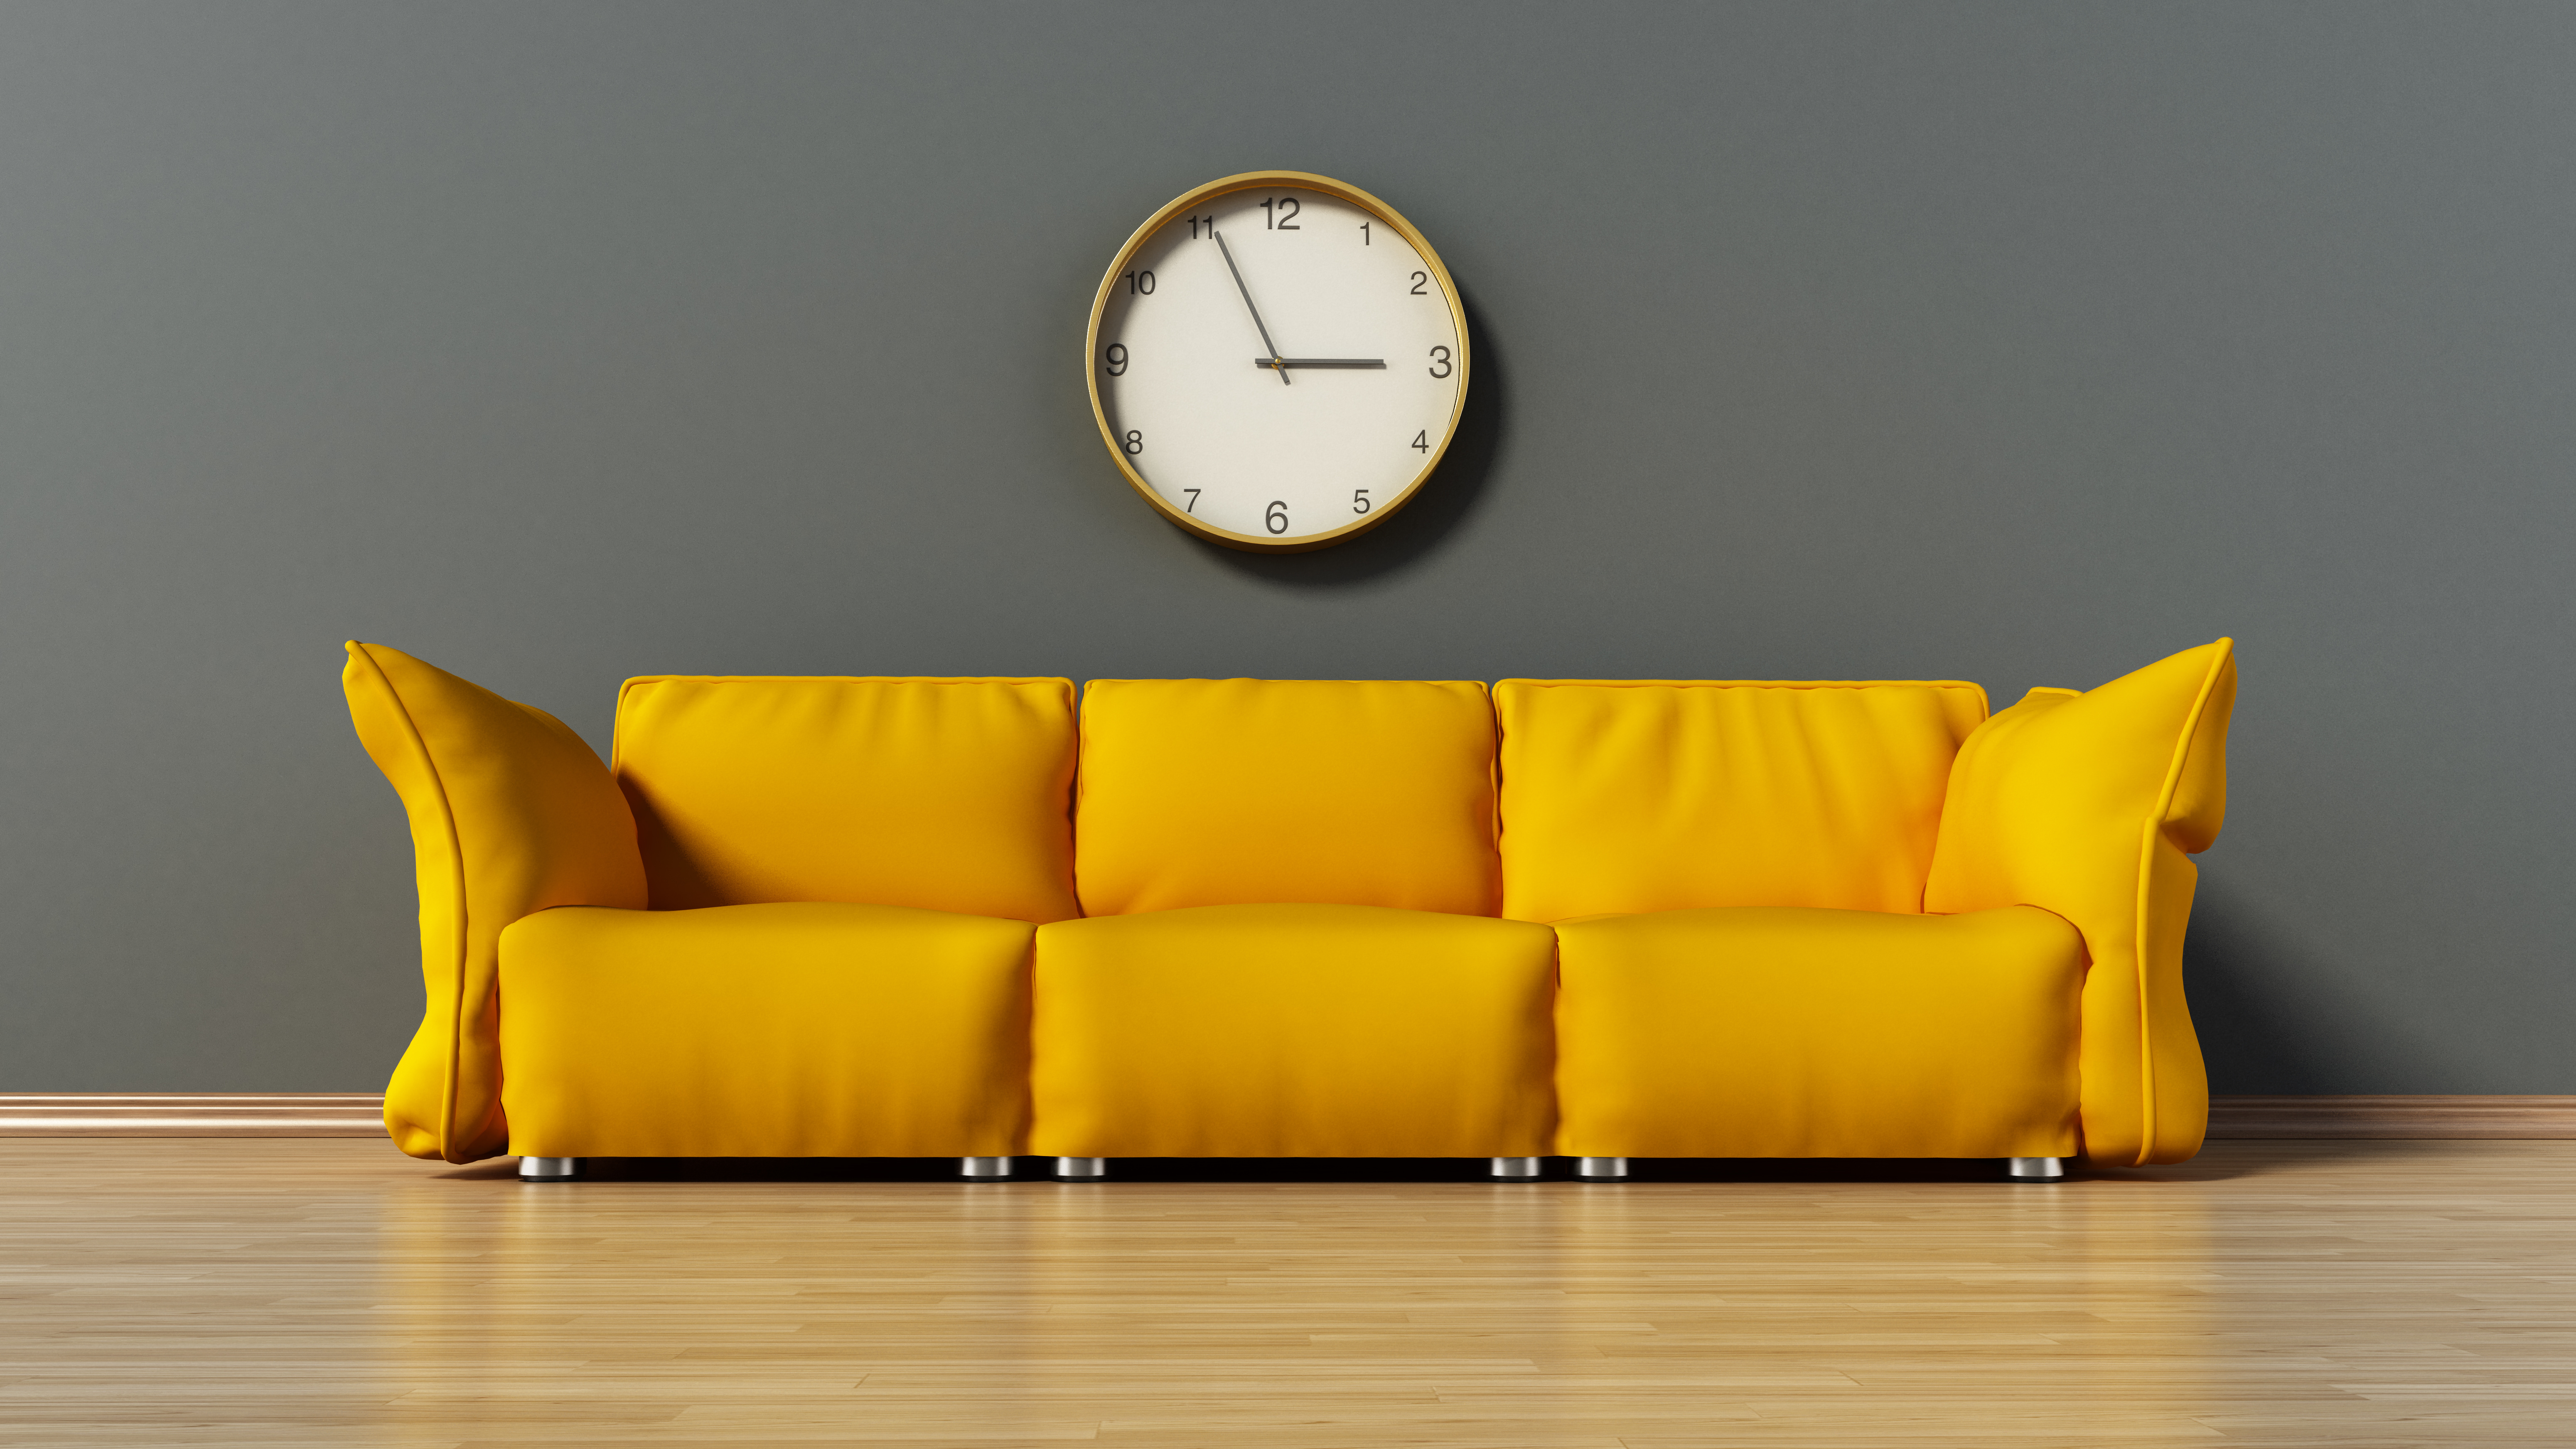 Green couch standing on parquet ground. 3D illustration